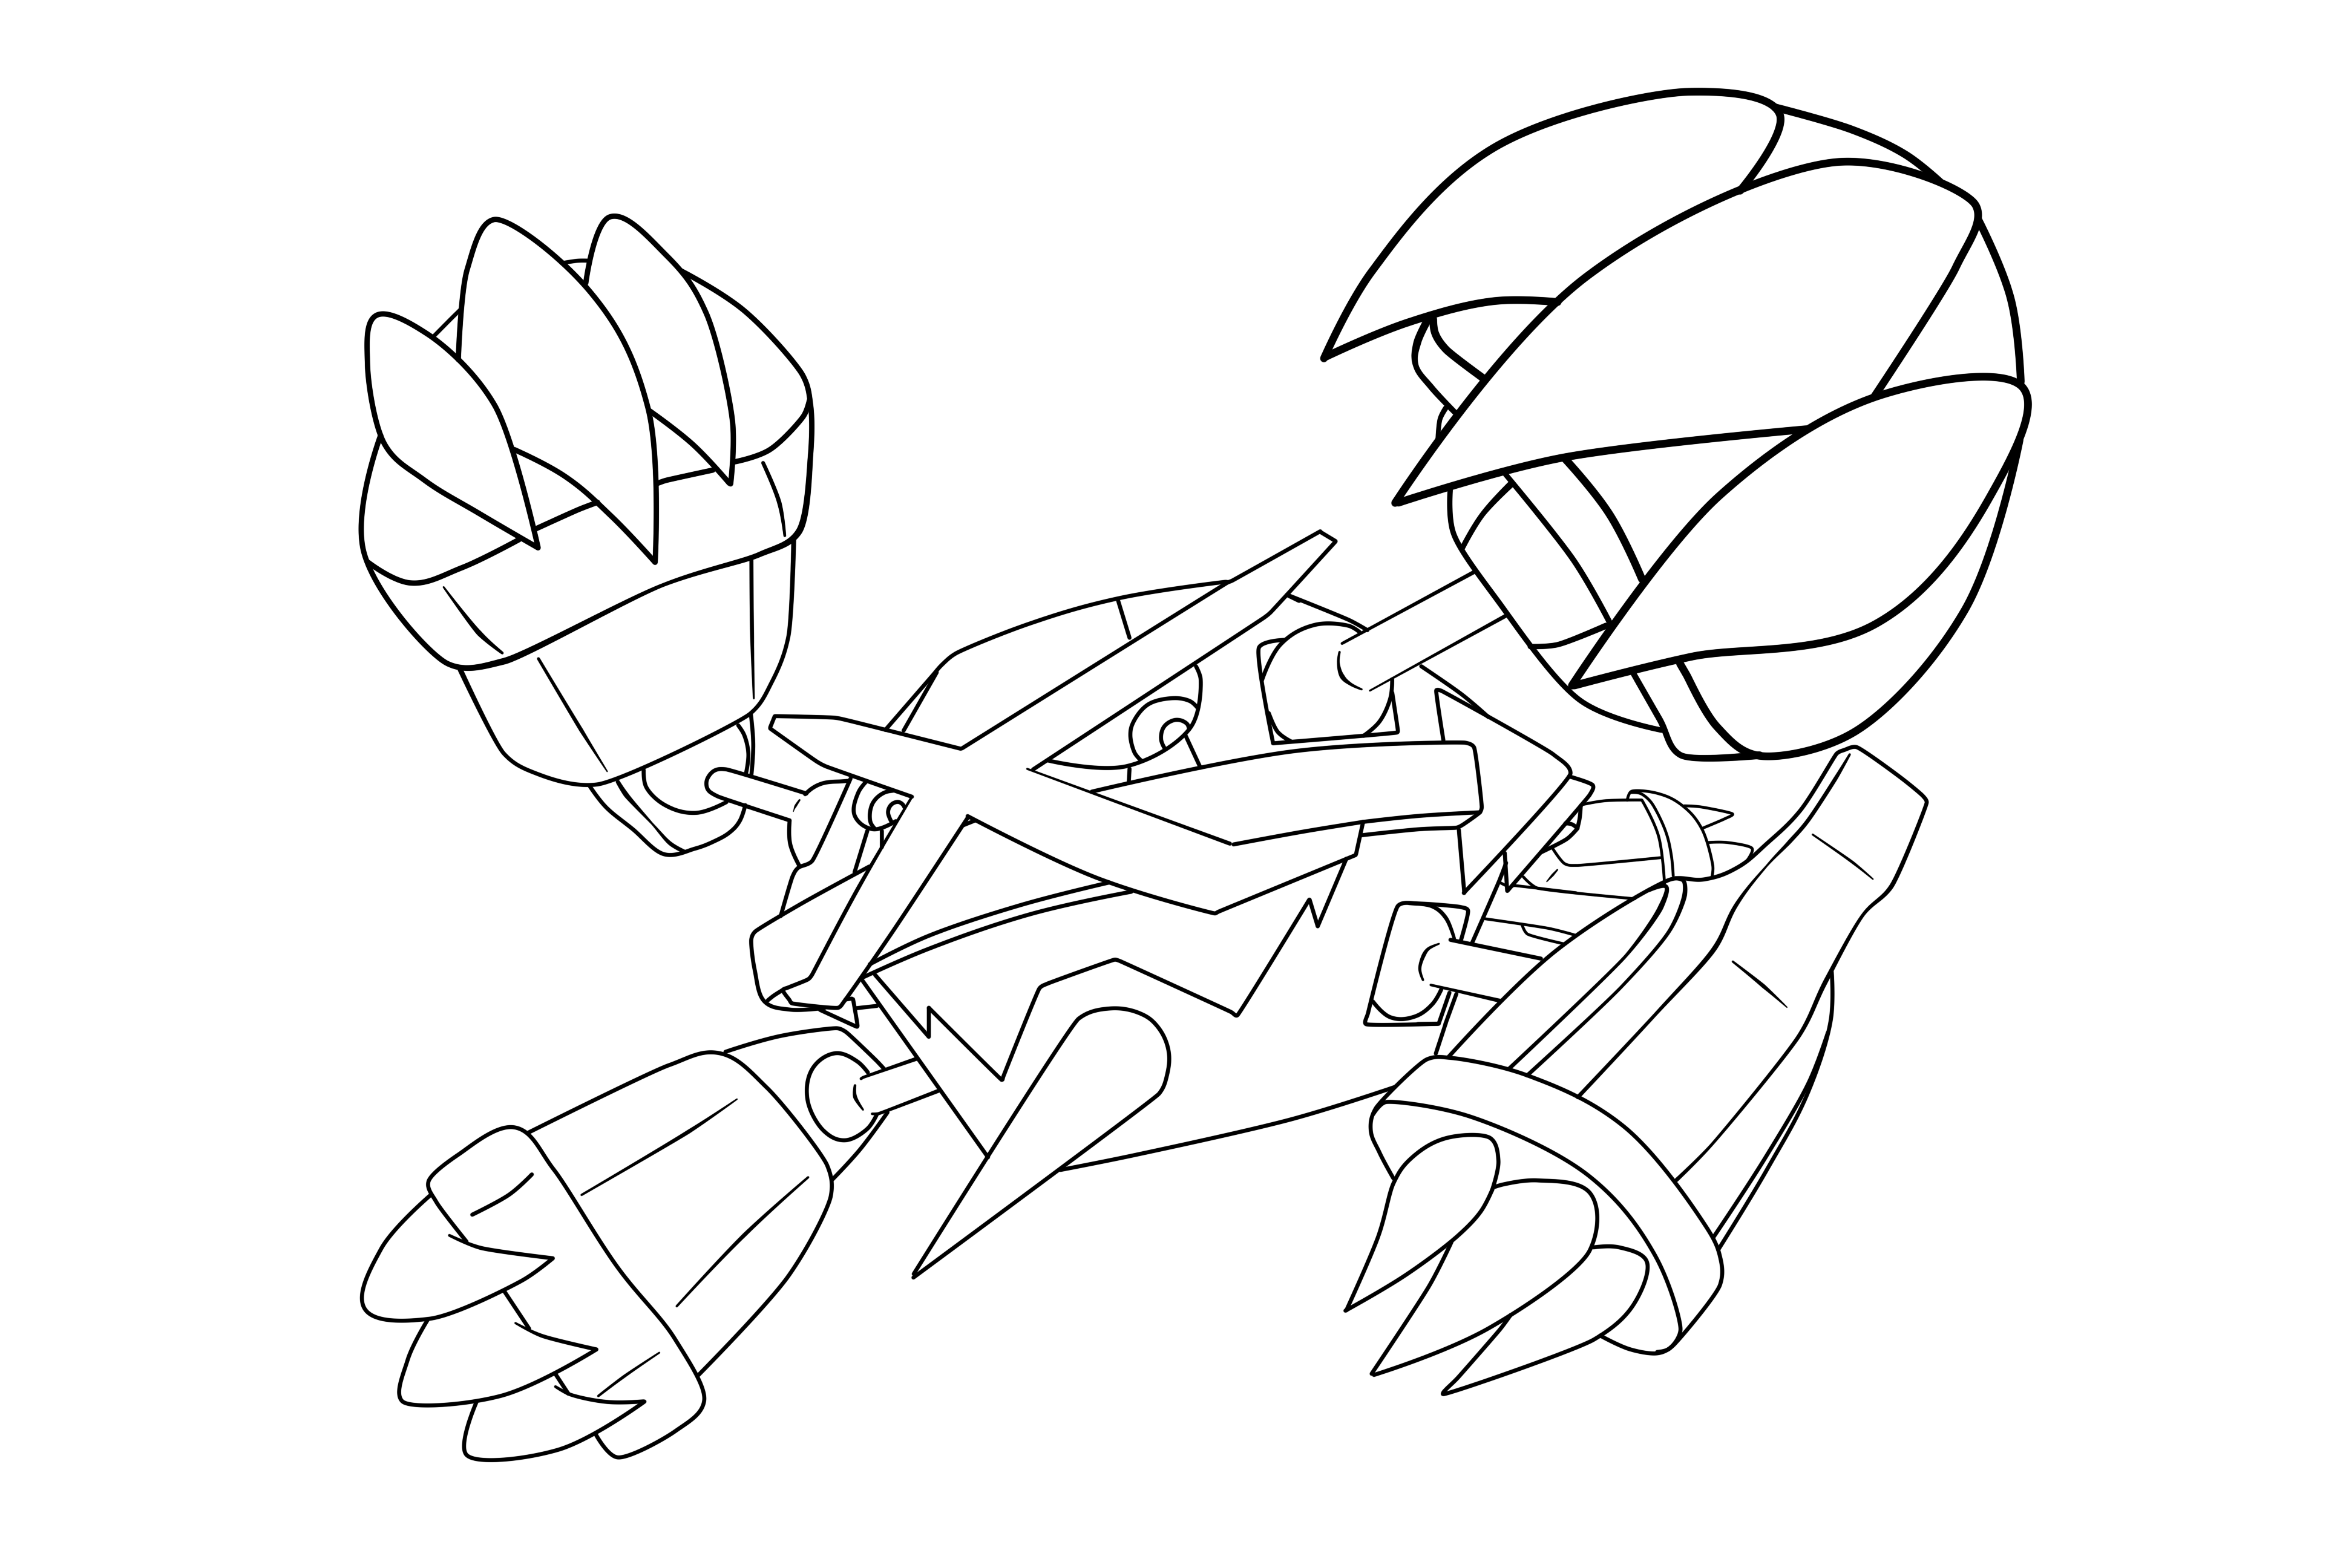 primal groudon coloring page free coloring pages of pokemon primal groudon 11070 coloring primal groudon page